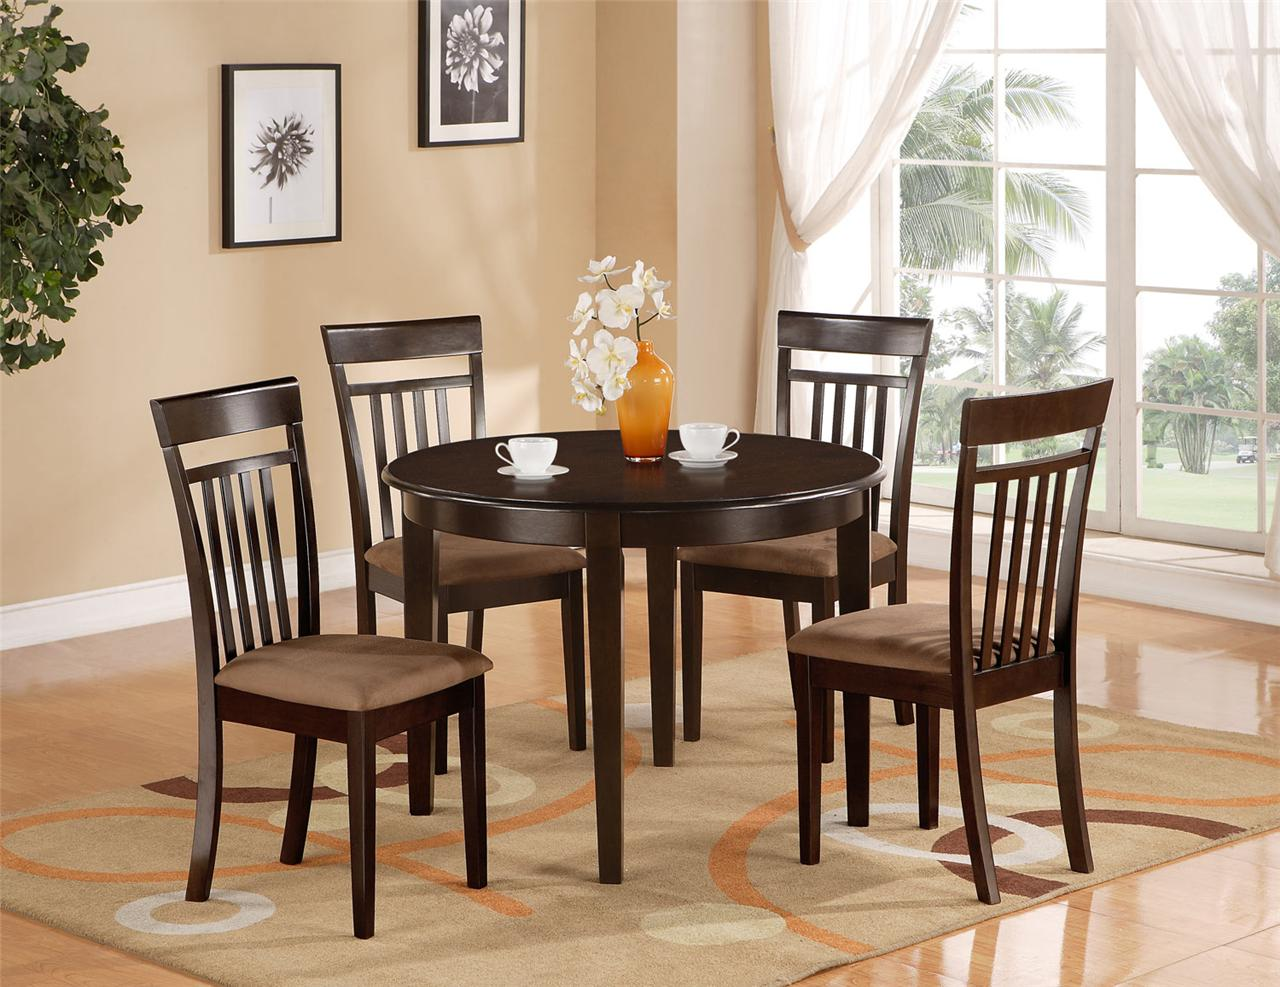 5 pc round kitchen dinette table 4 chairs cappuccino ebay for Kitchen table and stools